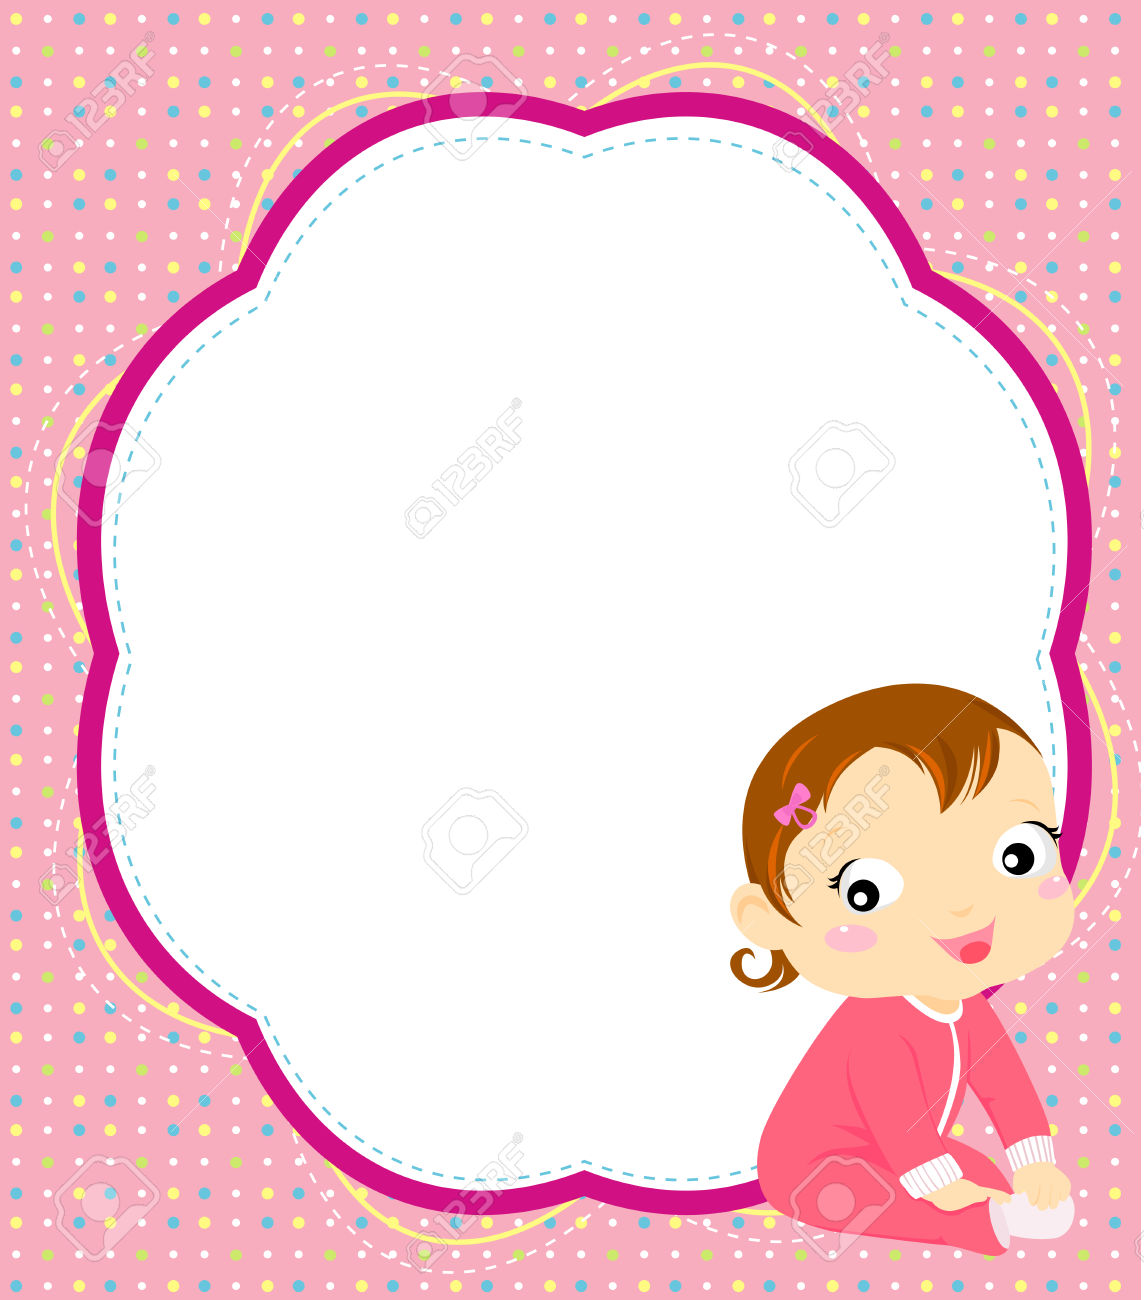 Baby girl christening clipart vector transparent stock Baby Girl Royalty Free Cliparts, Vectors, And Stock Illustration ... vector transparent stock